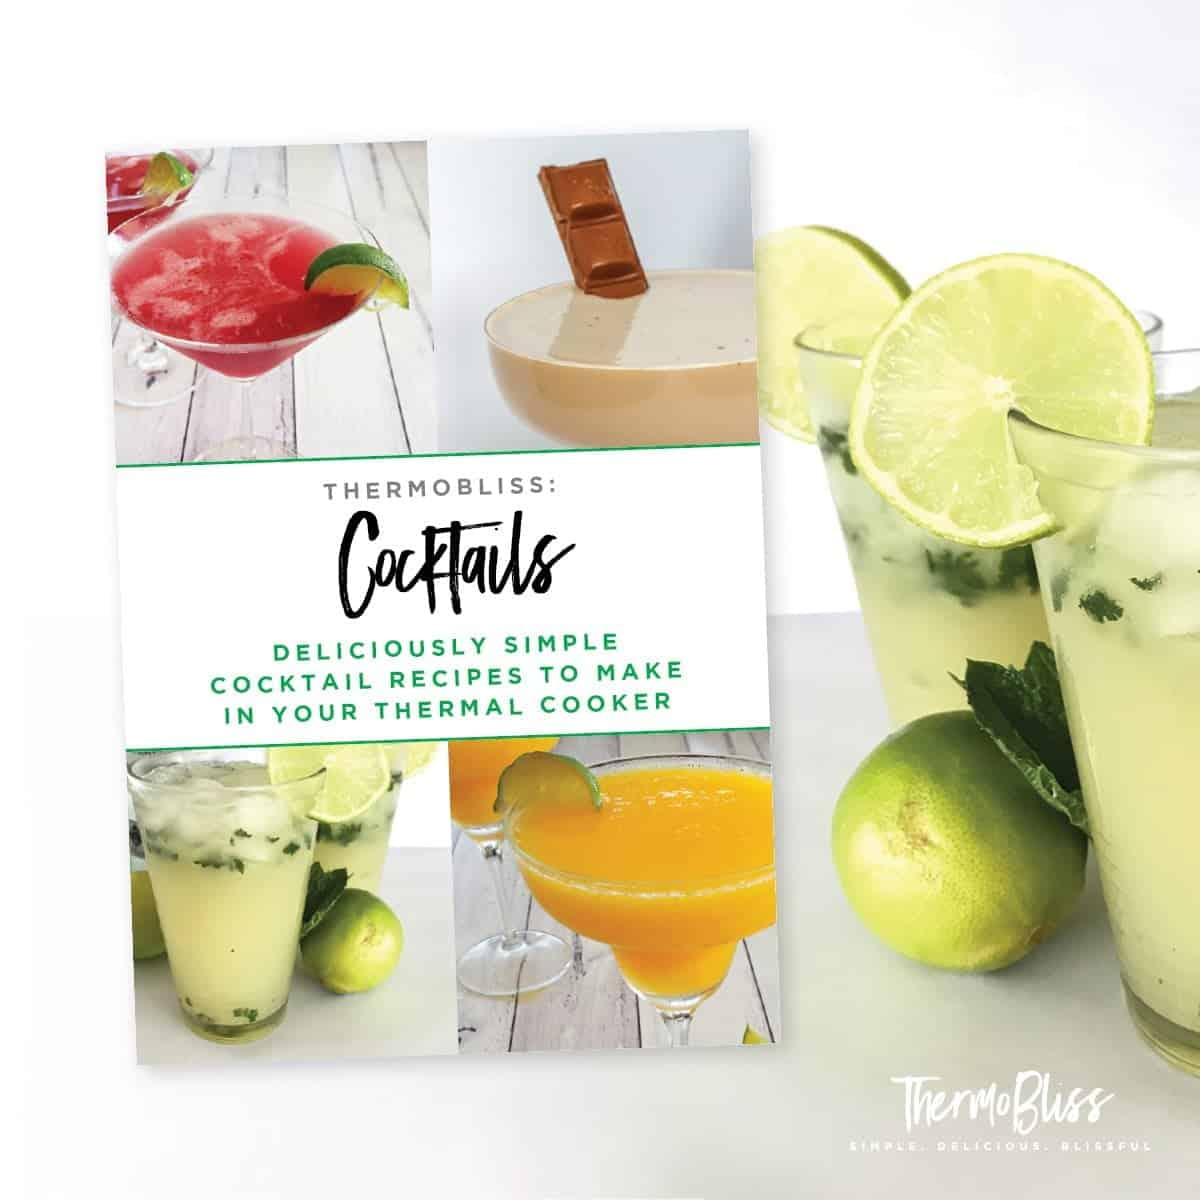 The cover of a recipe book - Thermobliss Cocktails